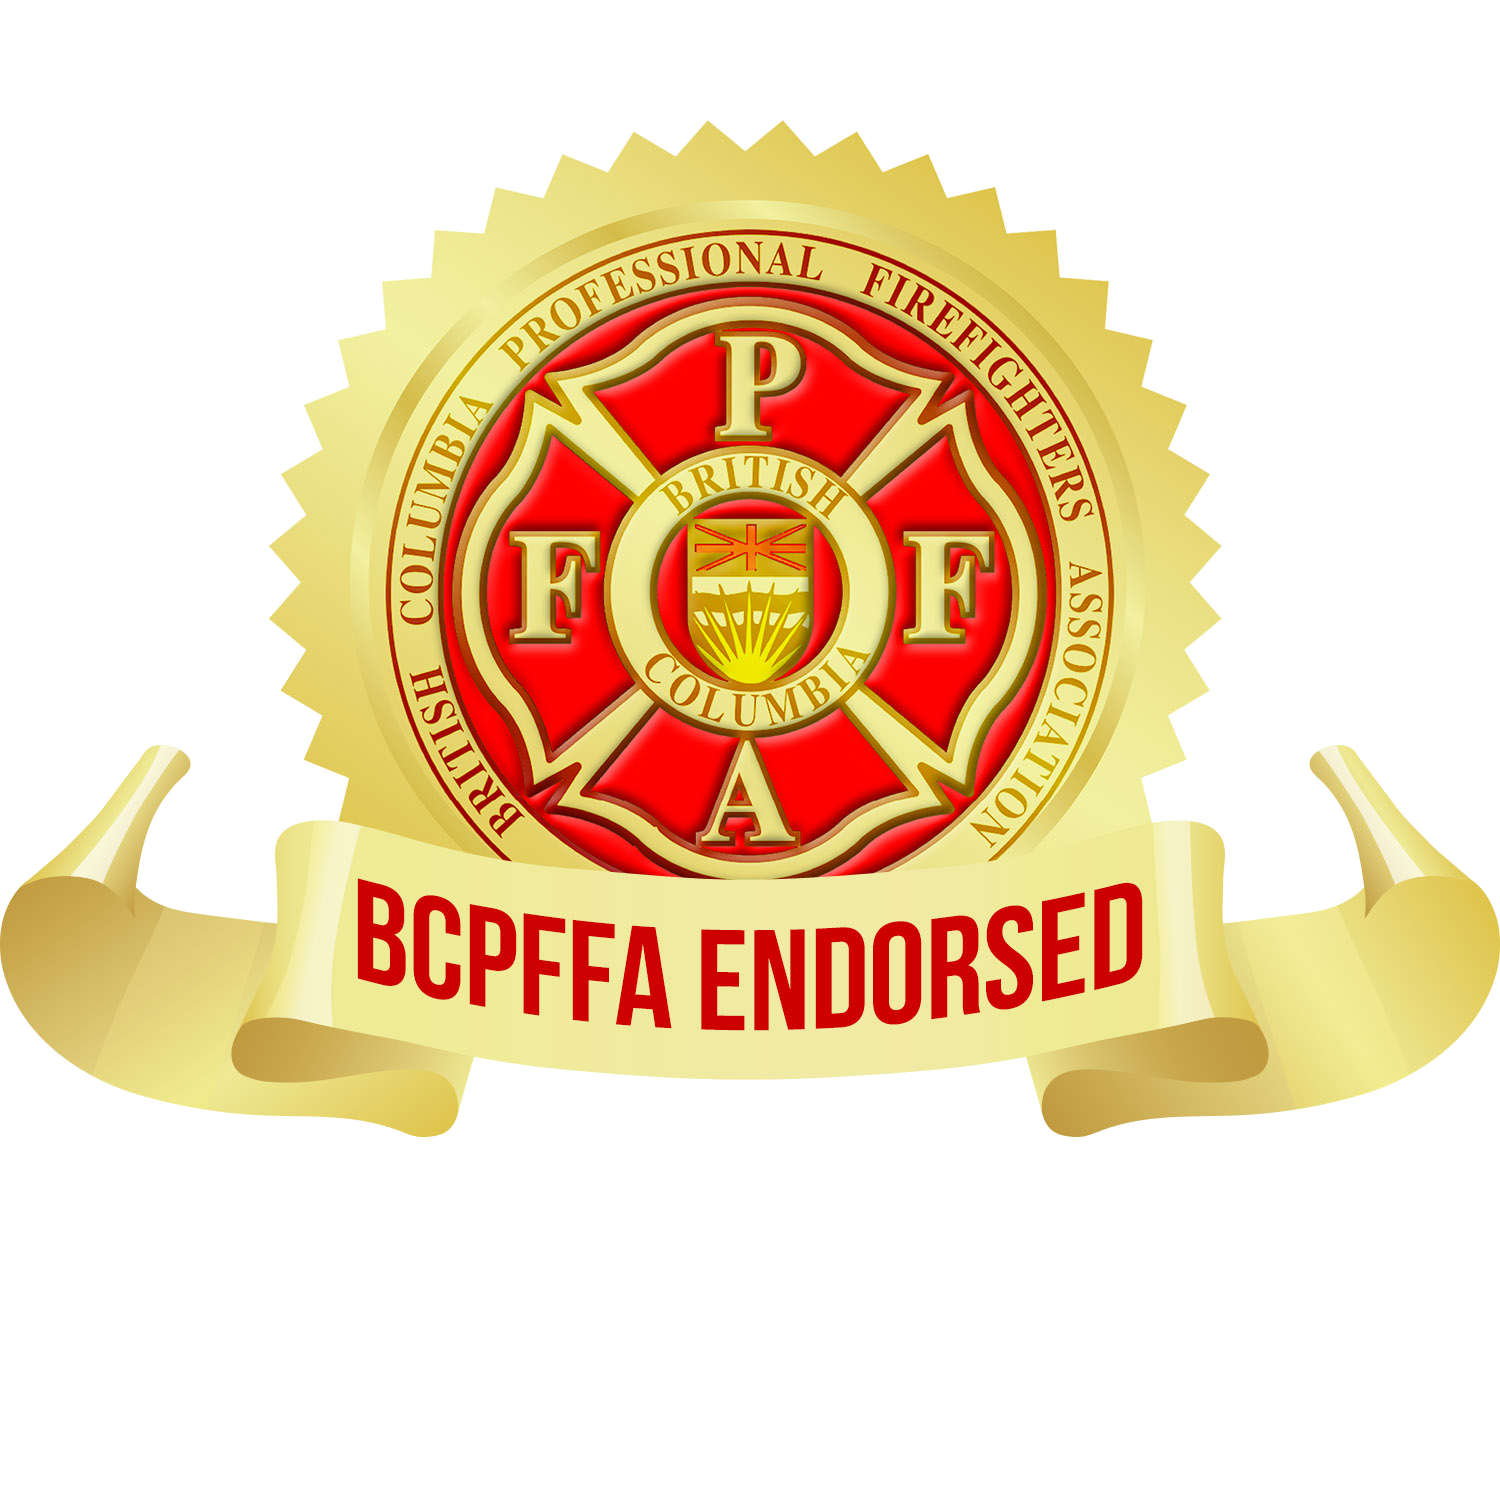 Endorsed by the BCPFFA